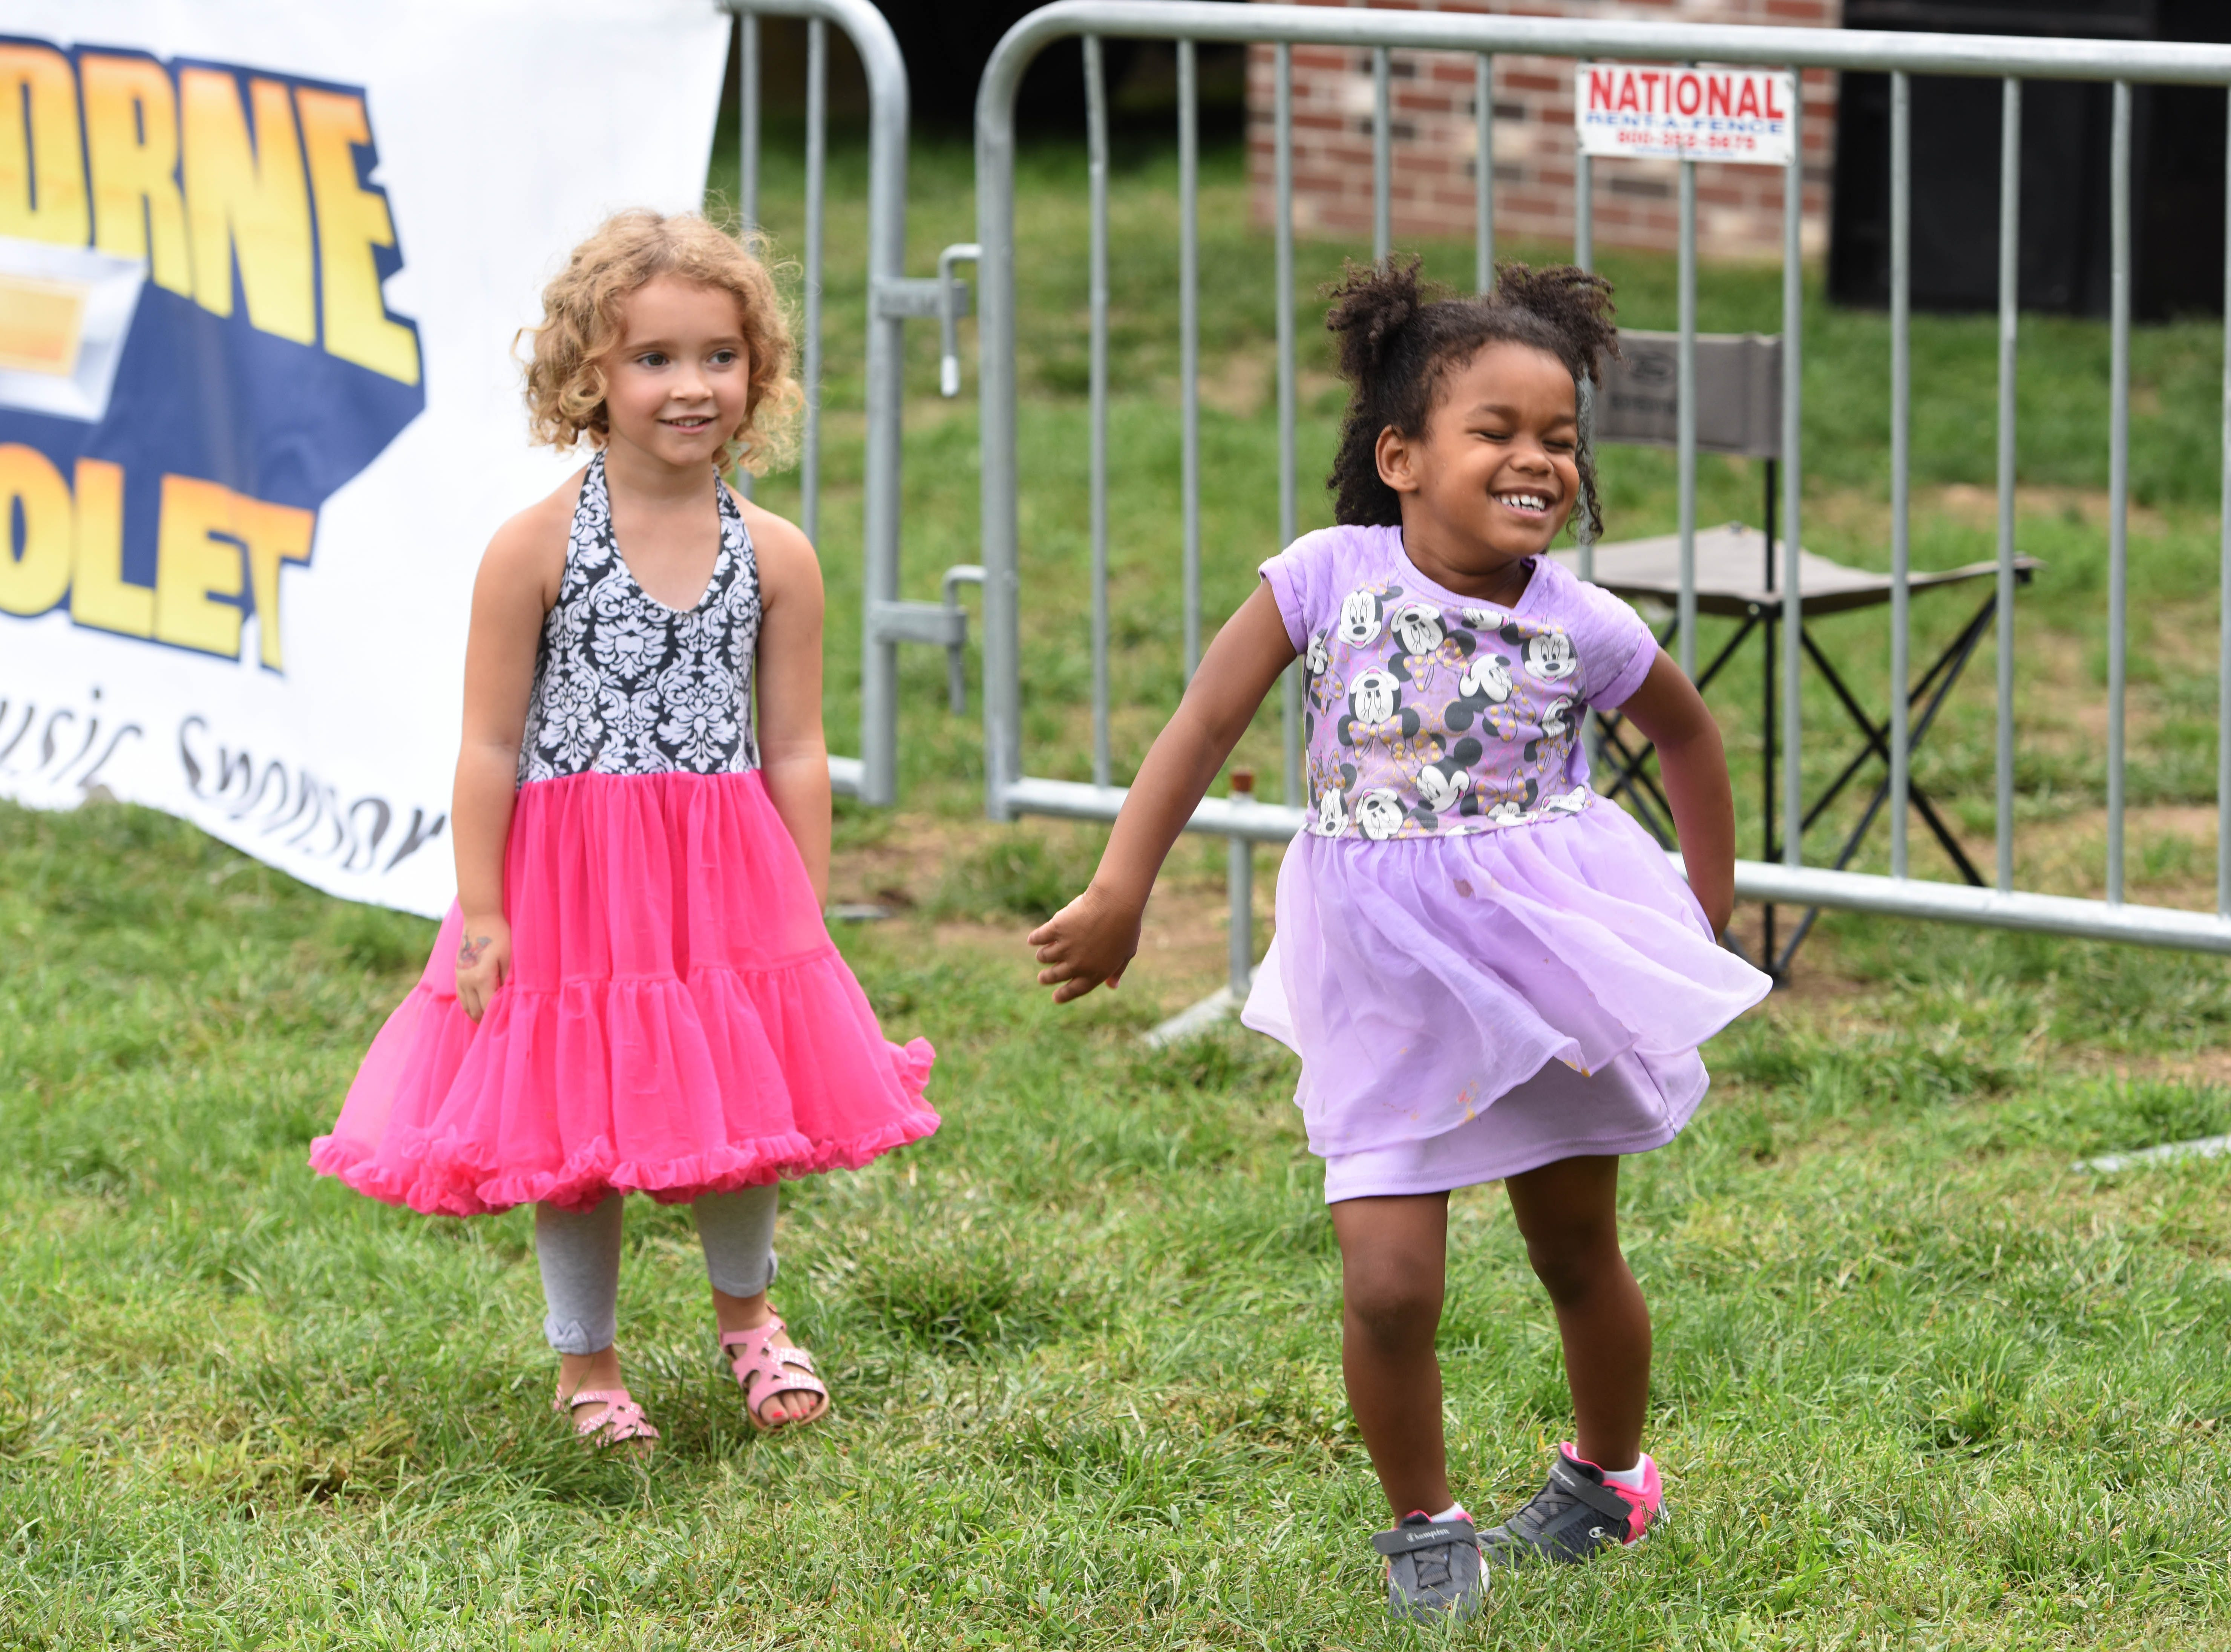 four-year-olds Hailey Stoll and Natalie Schroll dancing duringHawthorne Day